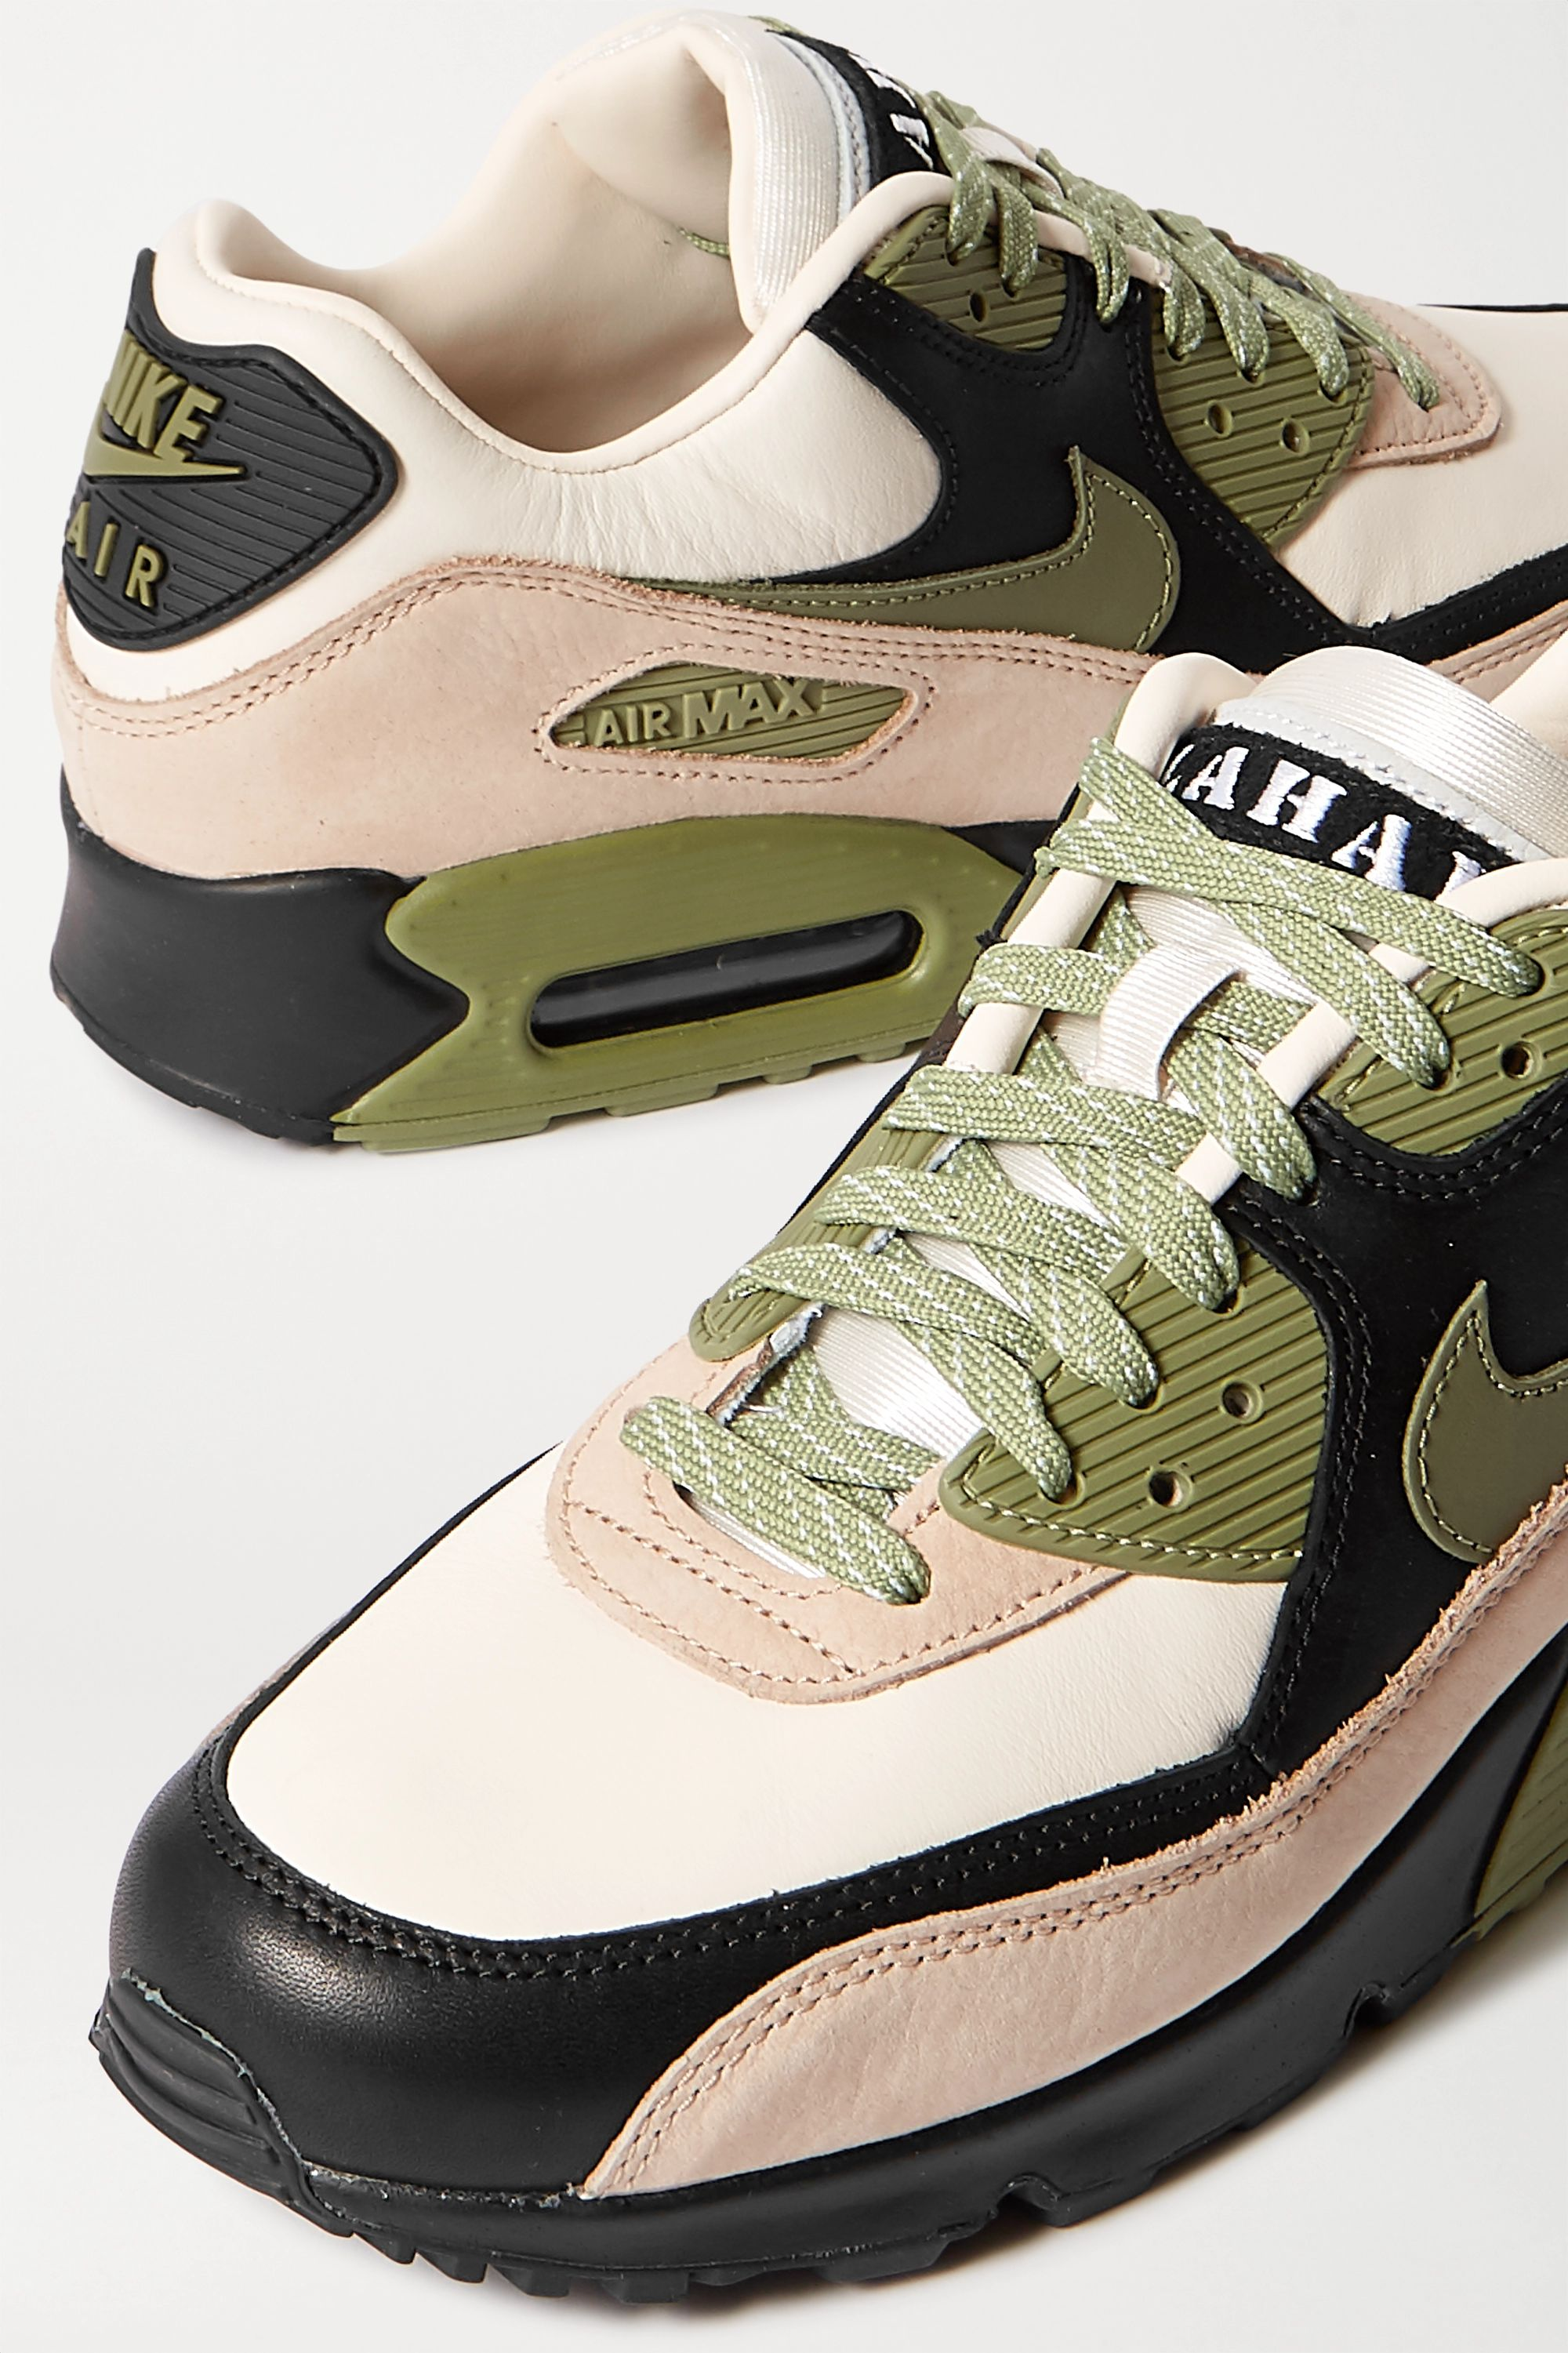 Nike Air Max 90 NRG nubuck and leather sneakers